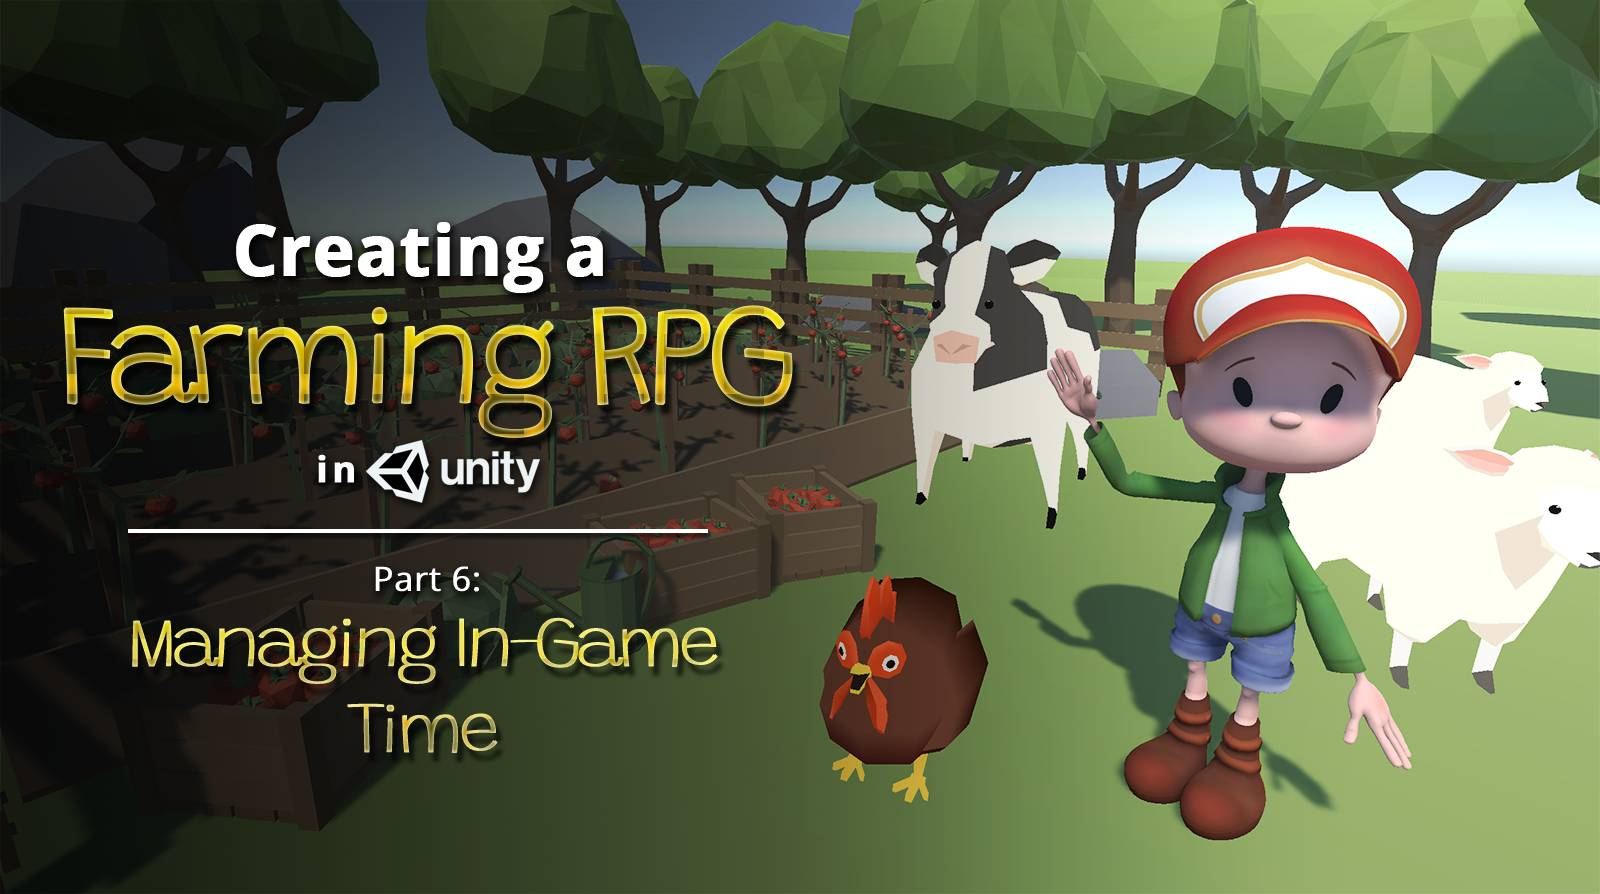 Creating a Farming RPG (like Harvest Moon) in Unity — Part 6: Managing In-Game Time